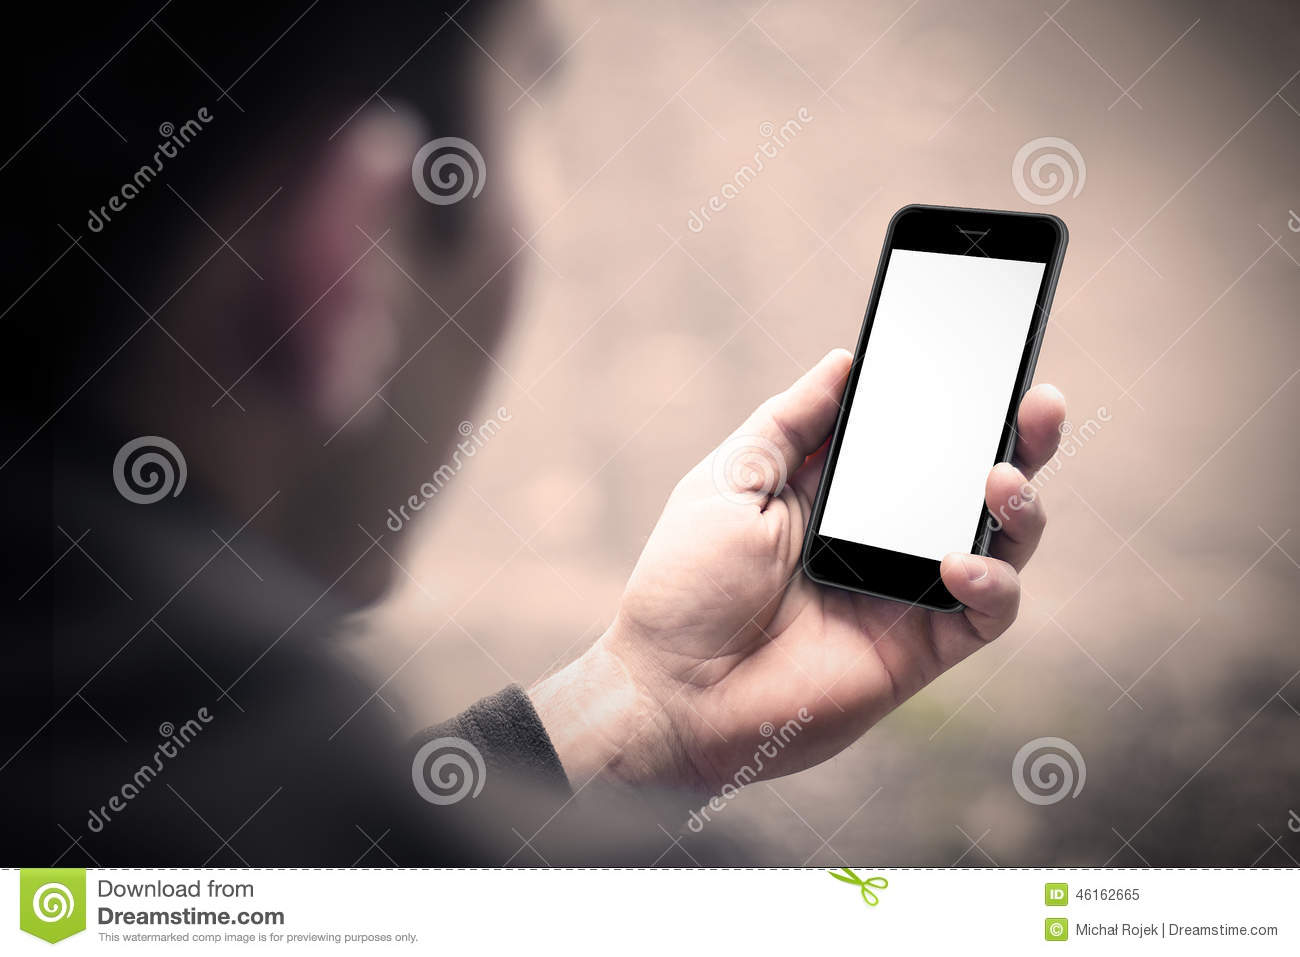 Person holding a smartphone with blank screen.